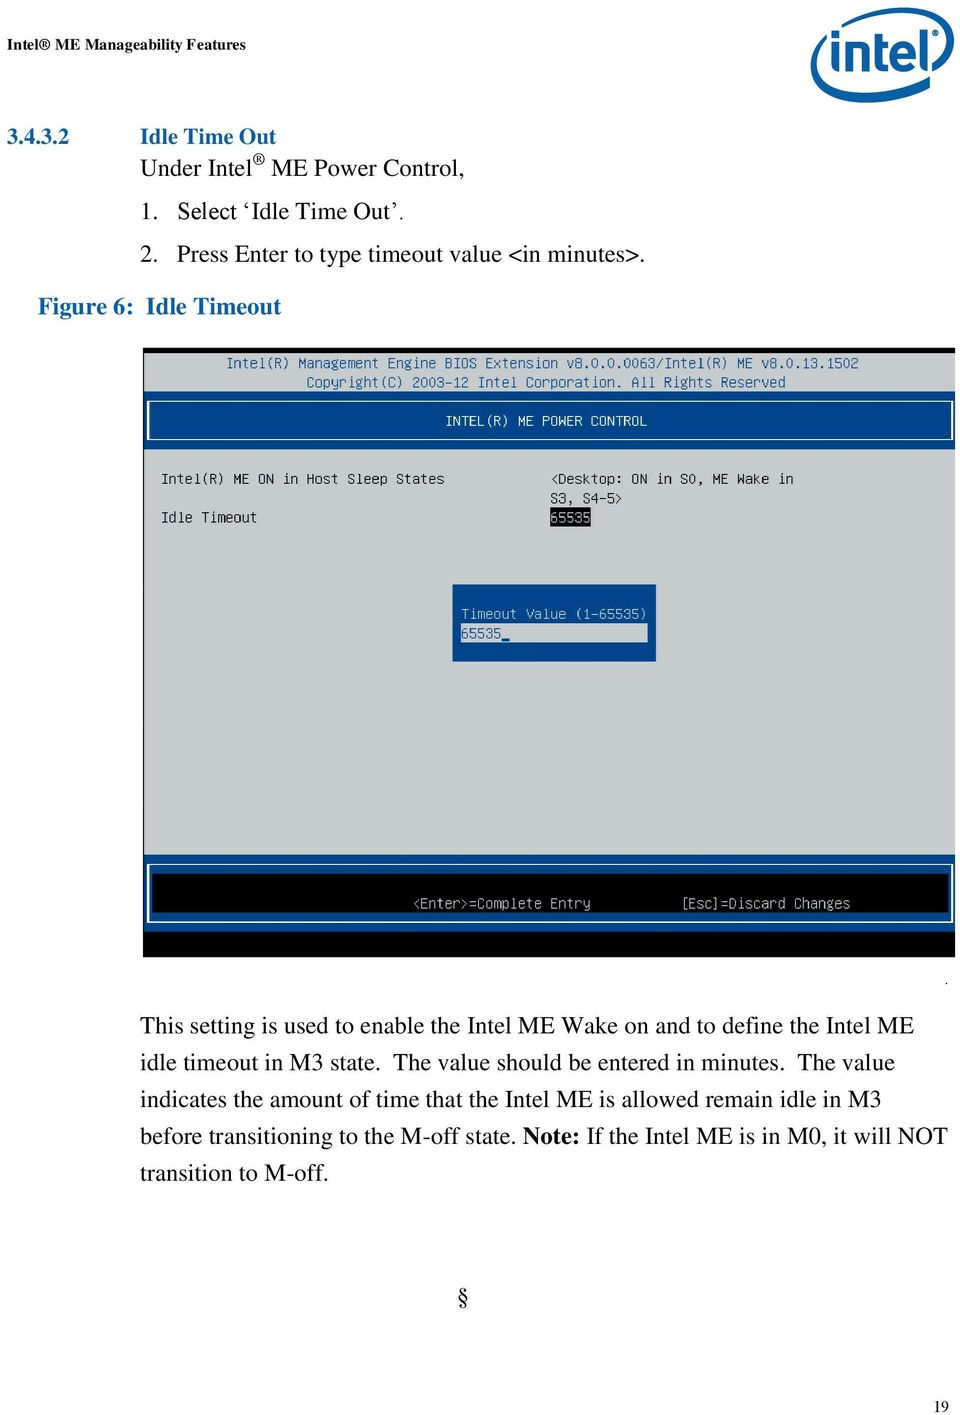 Figure 6: Idle Timeout This setting is used to enable the Intel ME Wake on and to define the Intel ME idle timeout in M3